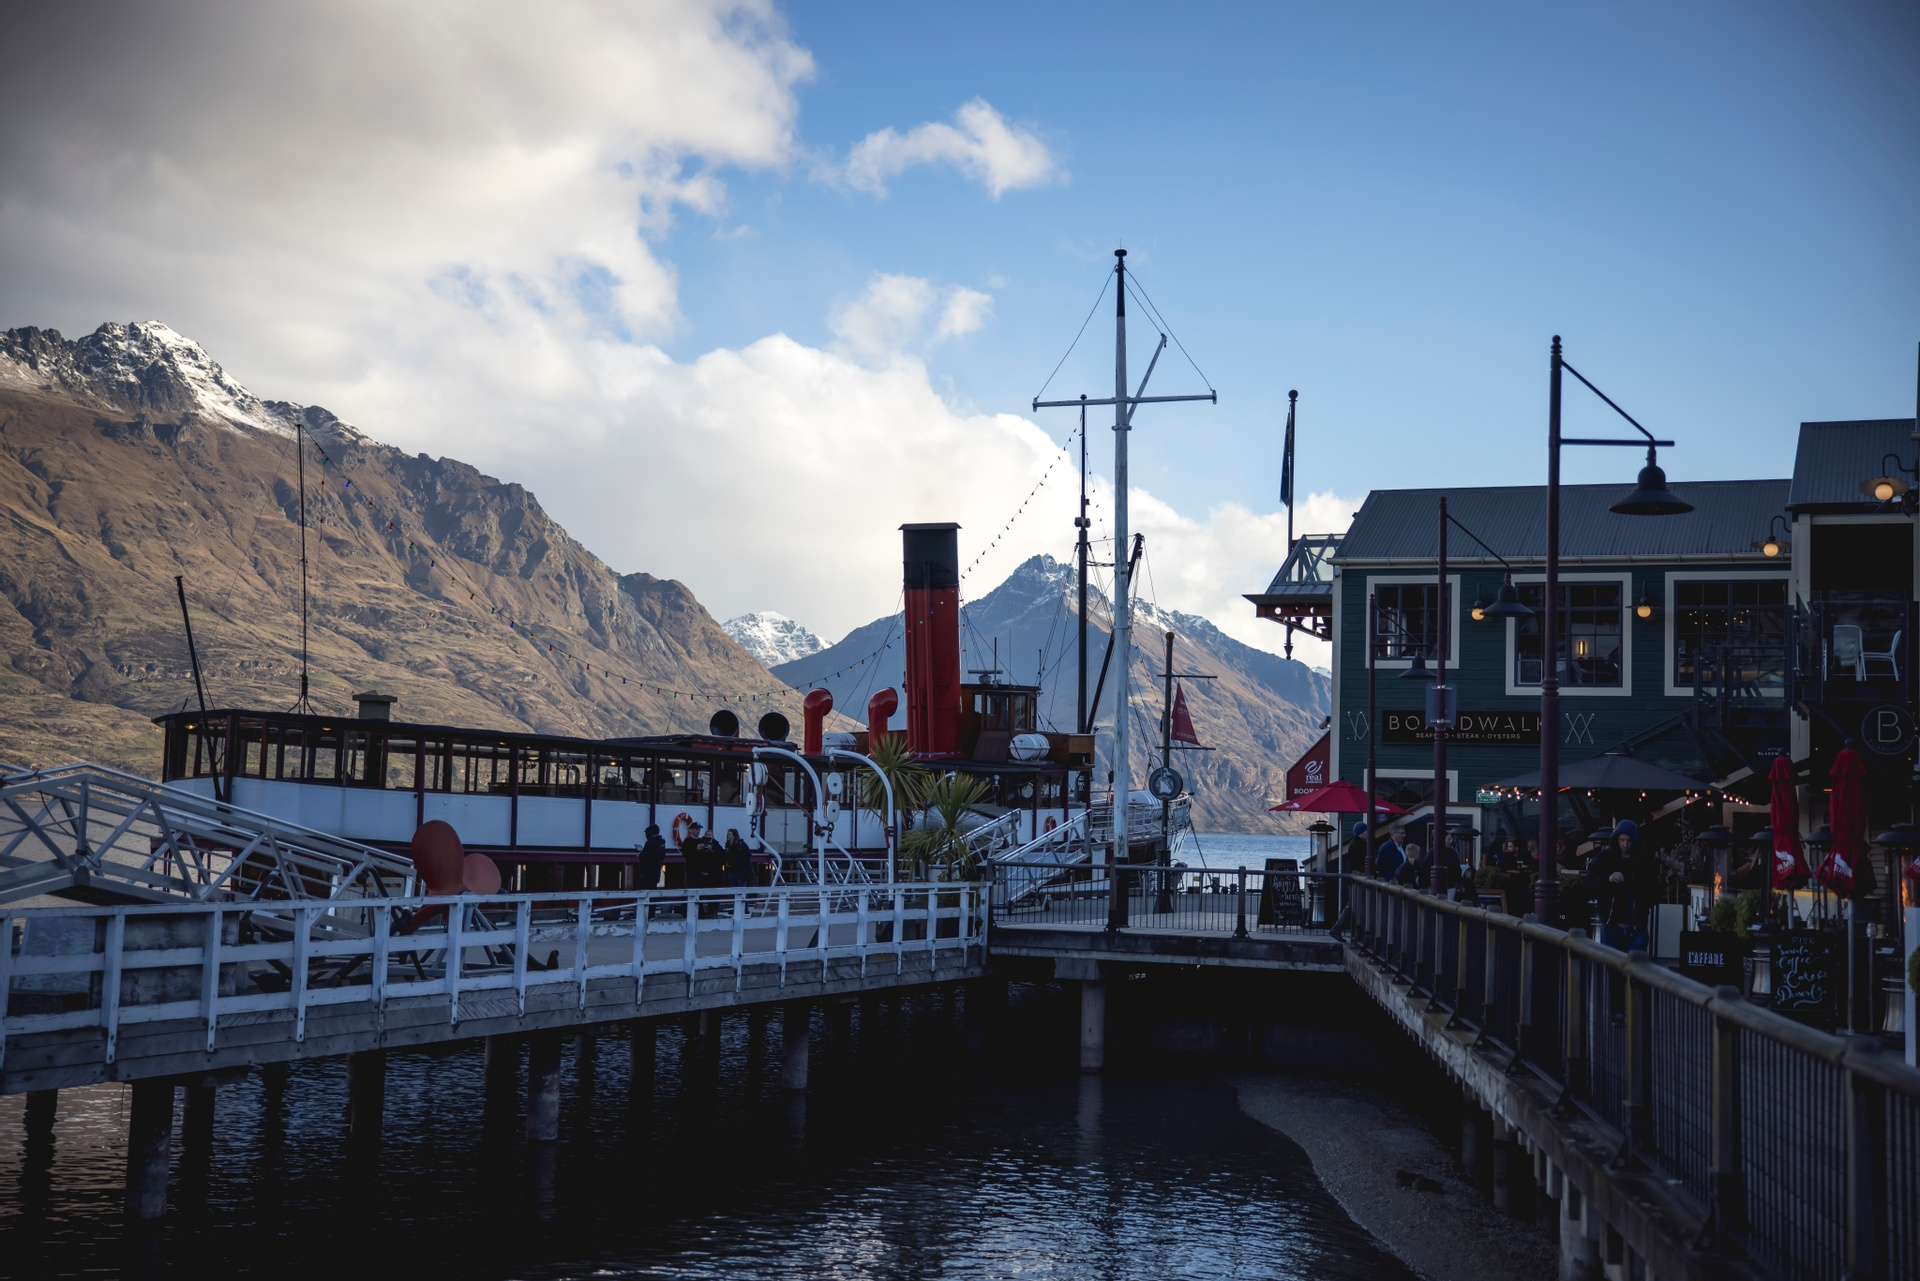 The TSS Earnslaw at dock in Queenstown. picture courtesy Miles Holden